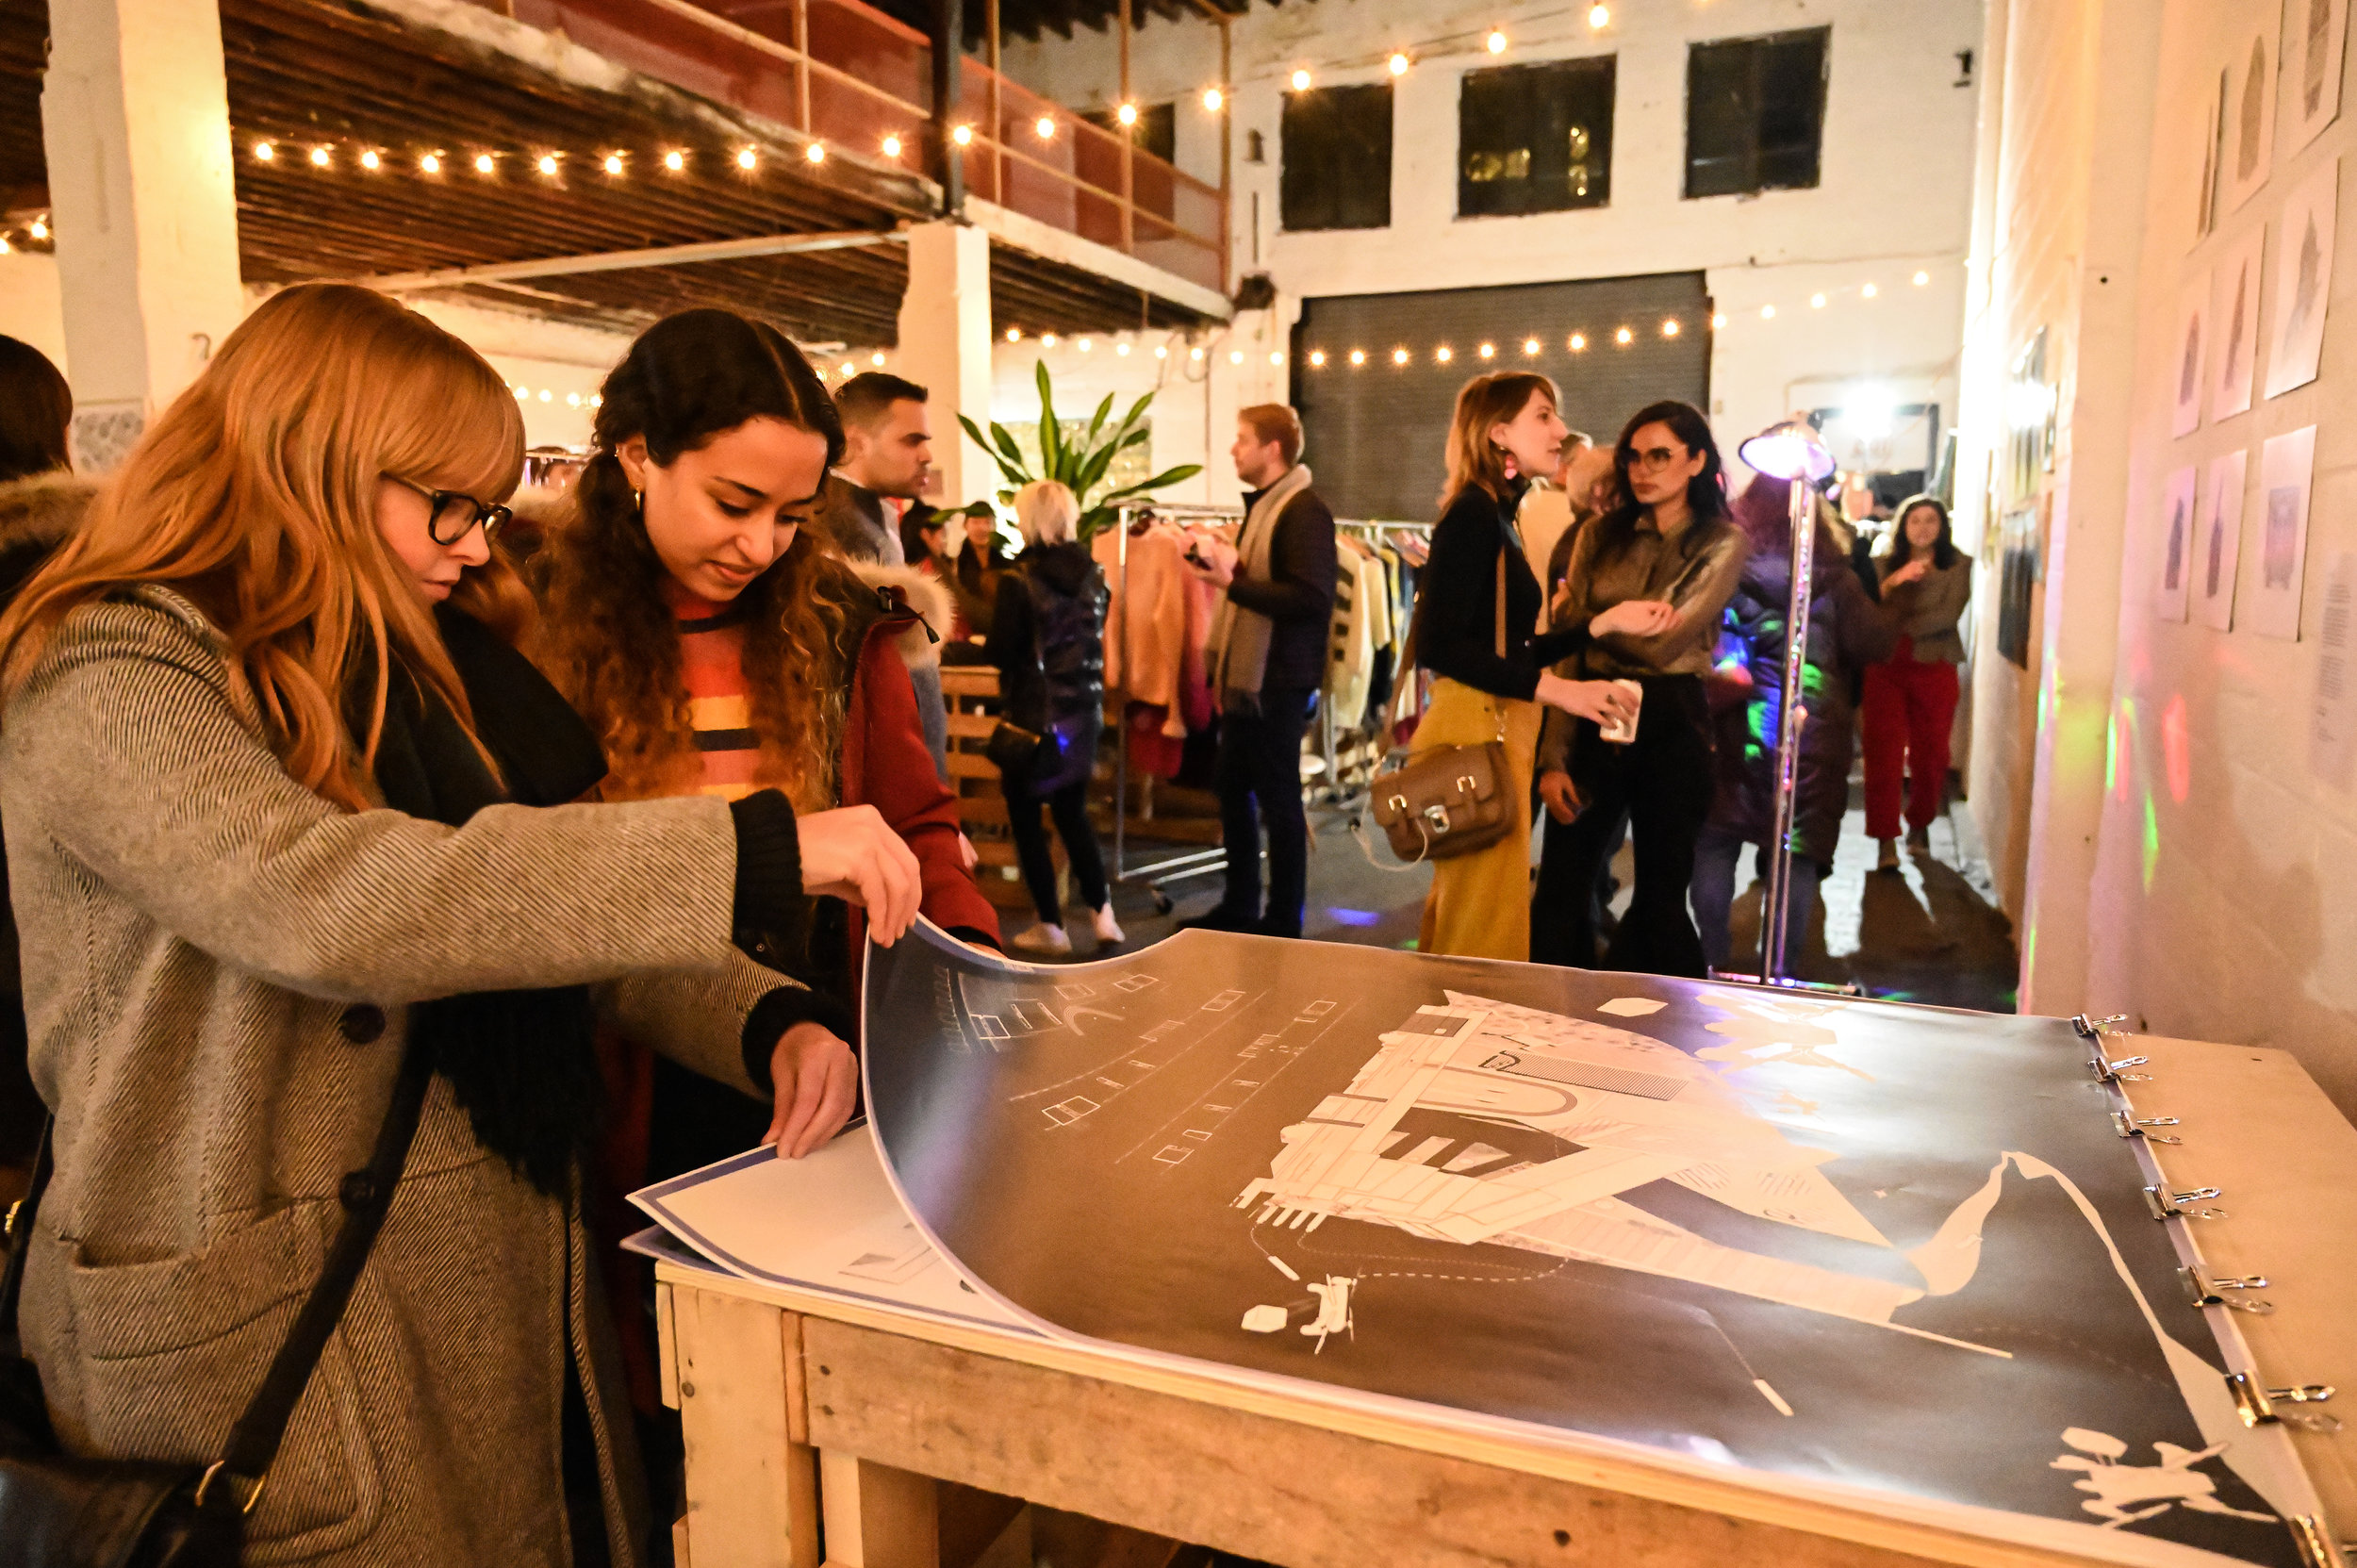 Guests viewing architectural drawings by Jon Levine at SUSTAIN's  Eco-Art Showcase  in January.